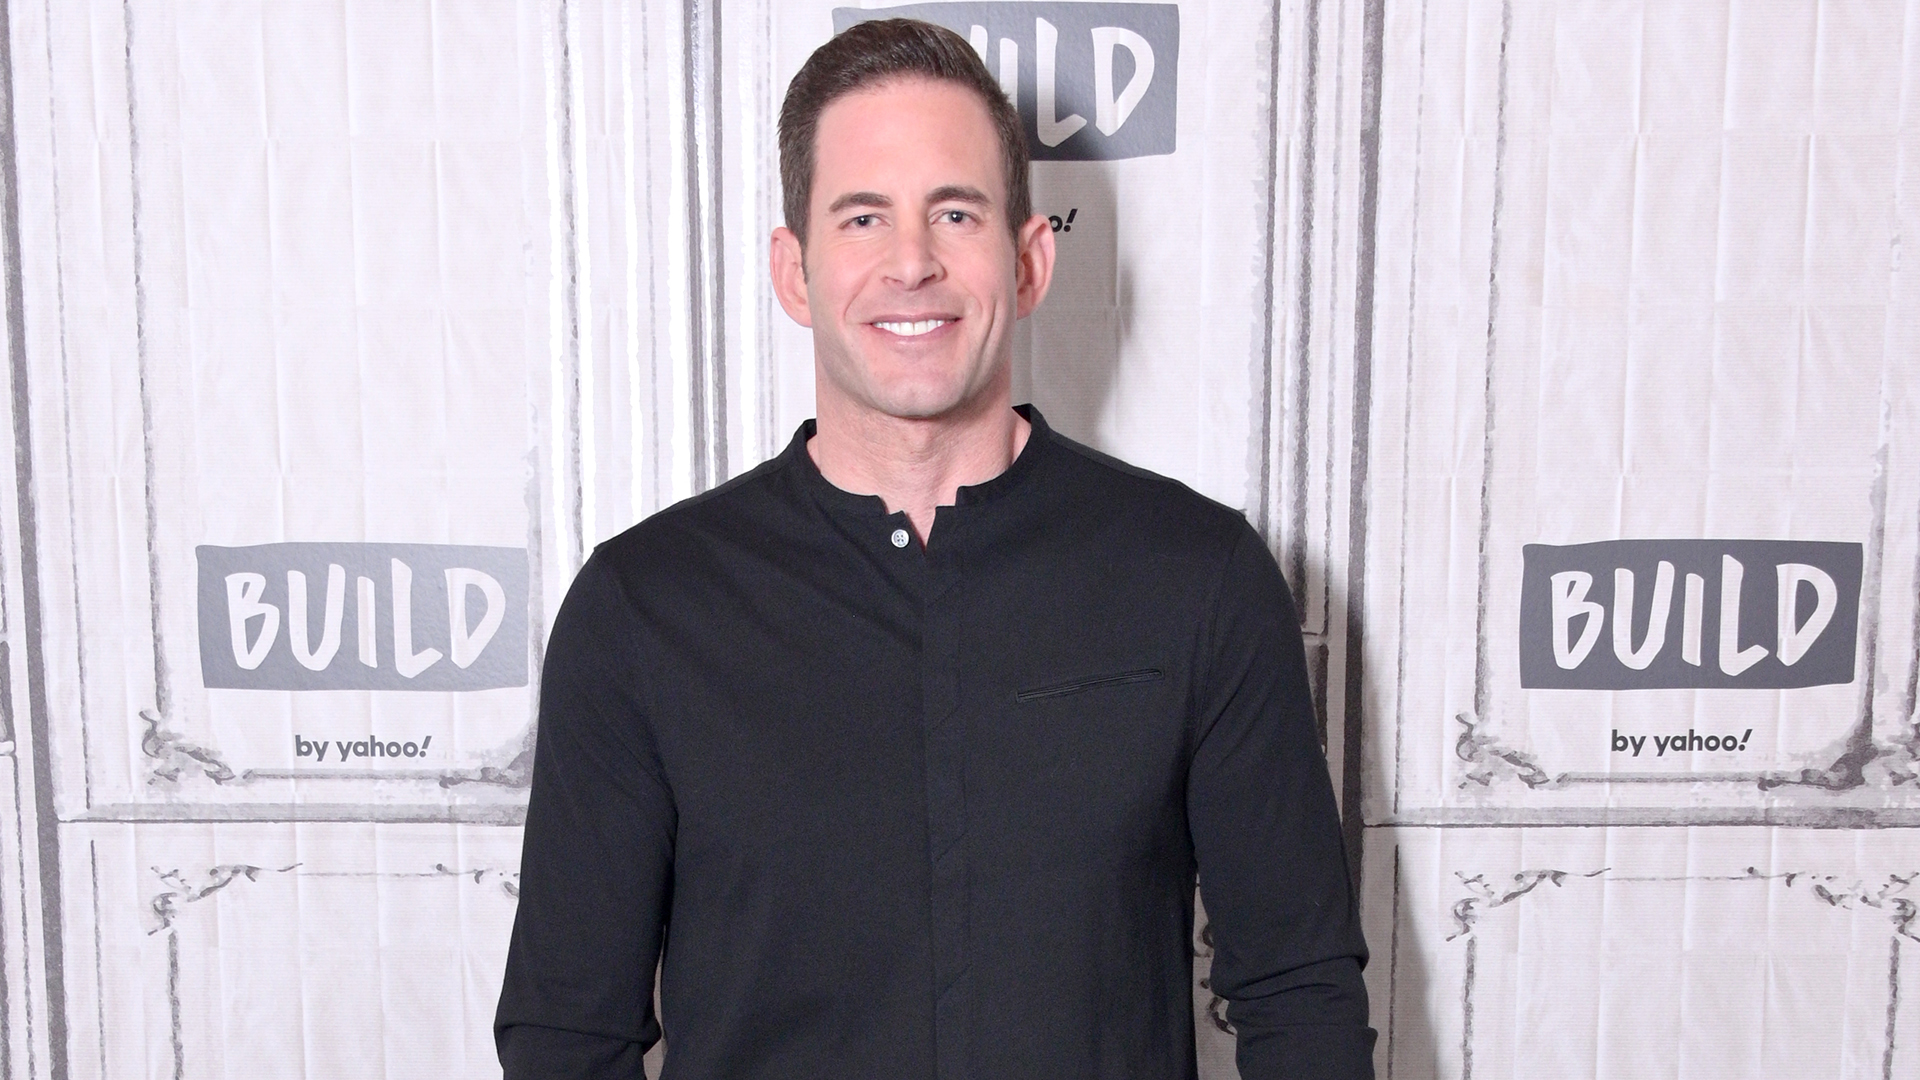 Tarek El Moussa shares how he's living the life he's dreamed